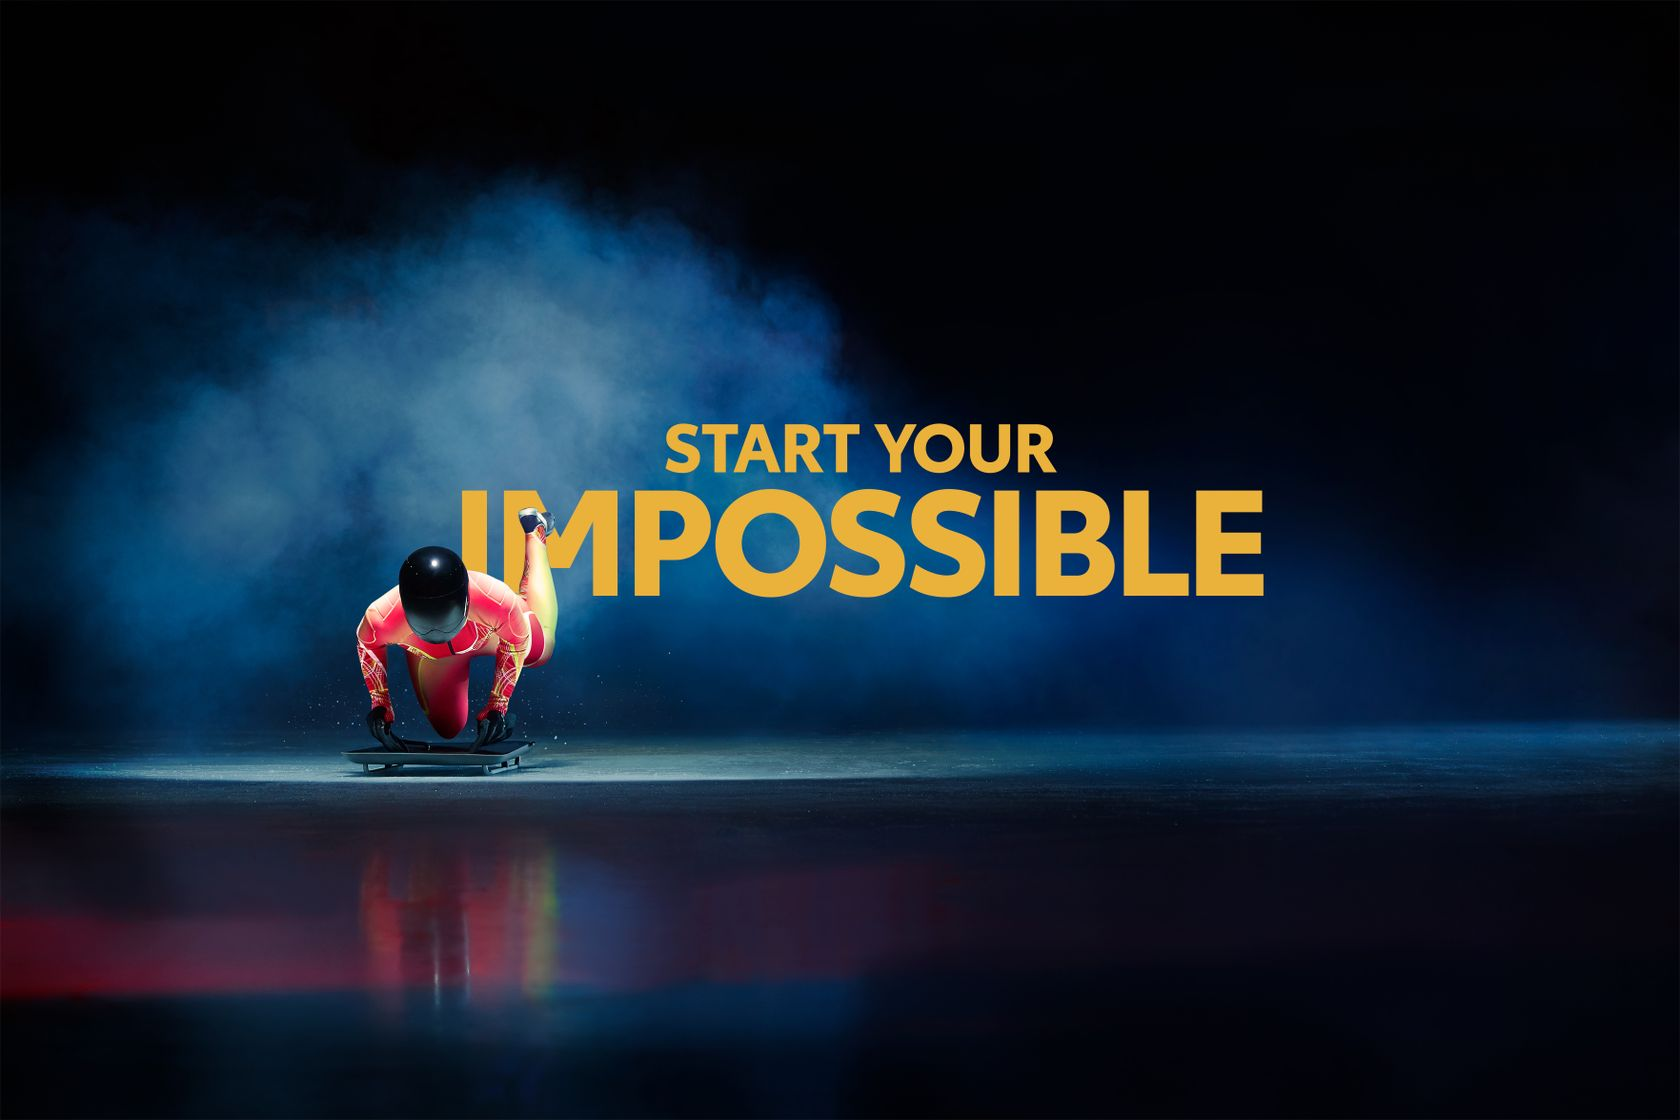 Start_Your_Impossible_Skeleton_730A6D6E871971FEE4DEFEEB1450B7652CCC38A0